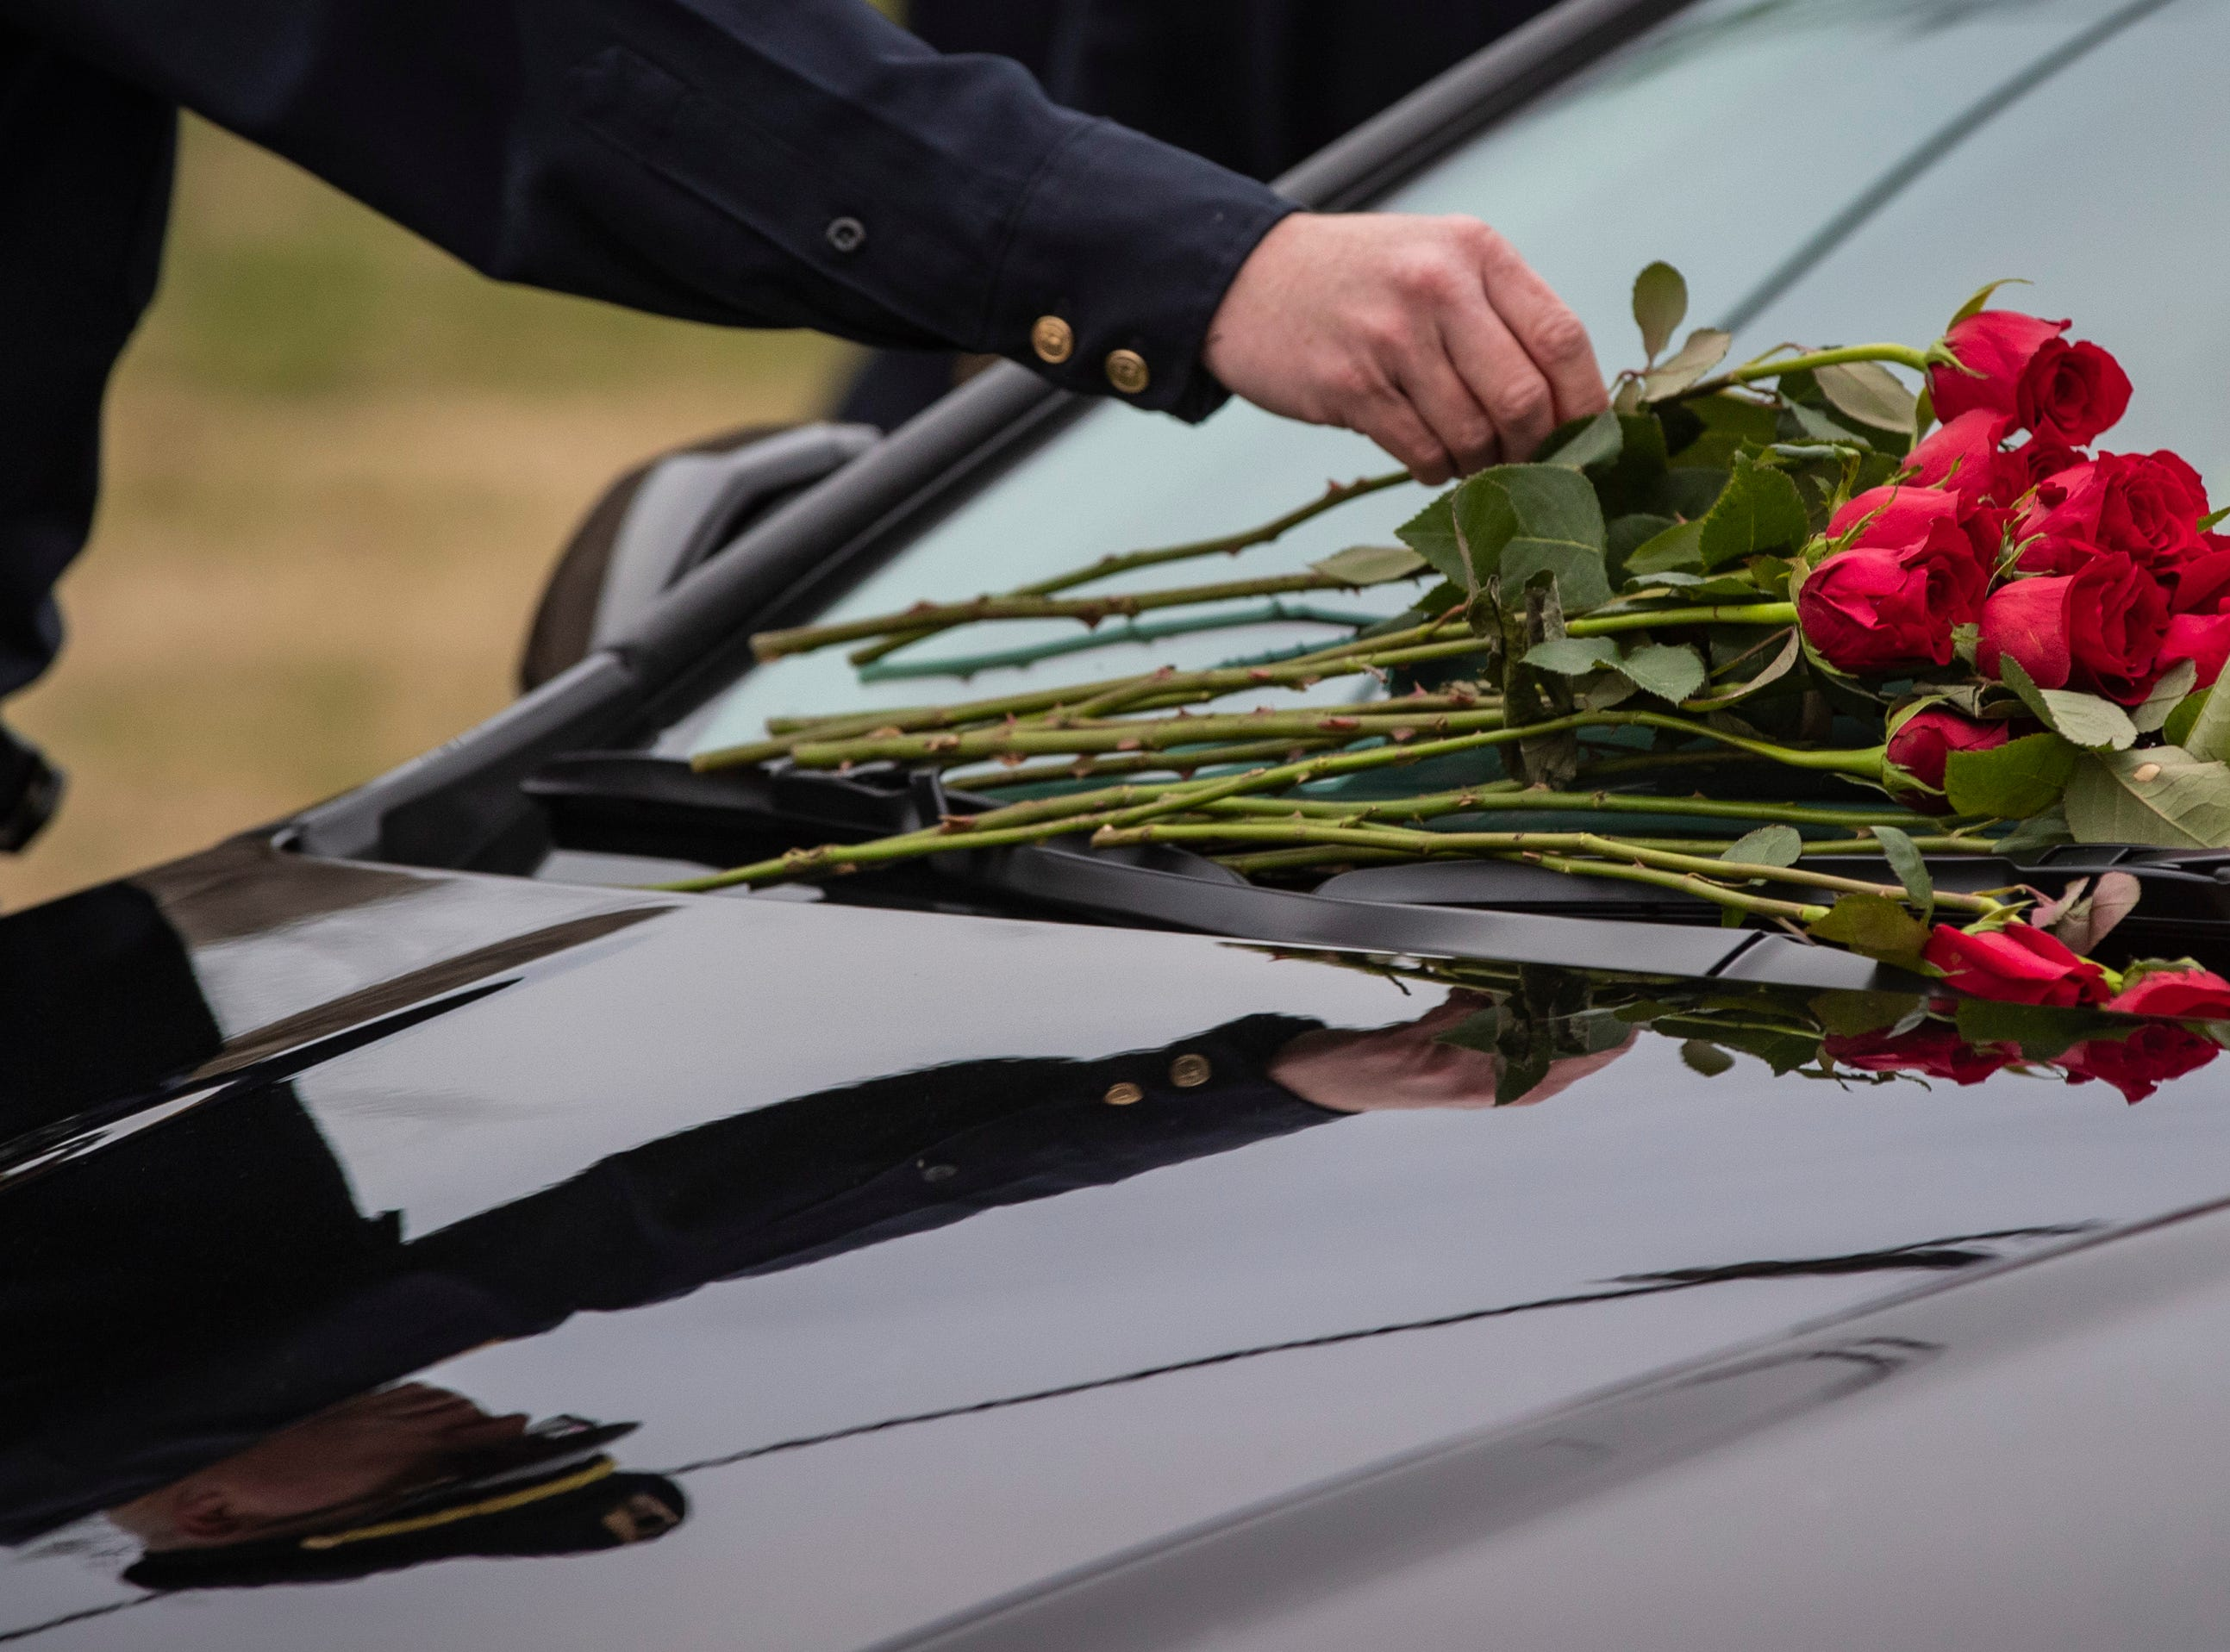 LMPD officers lay roses on the hearse carrying Det. Deidre Mengedoht during a stop at the LMPD 2nd Division headquarters in Park DuValle. December 29, 2018